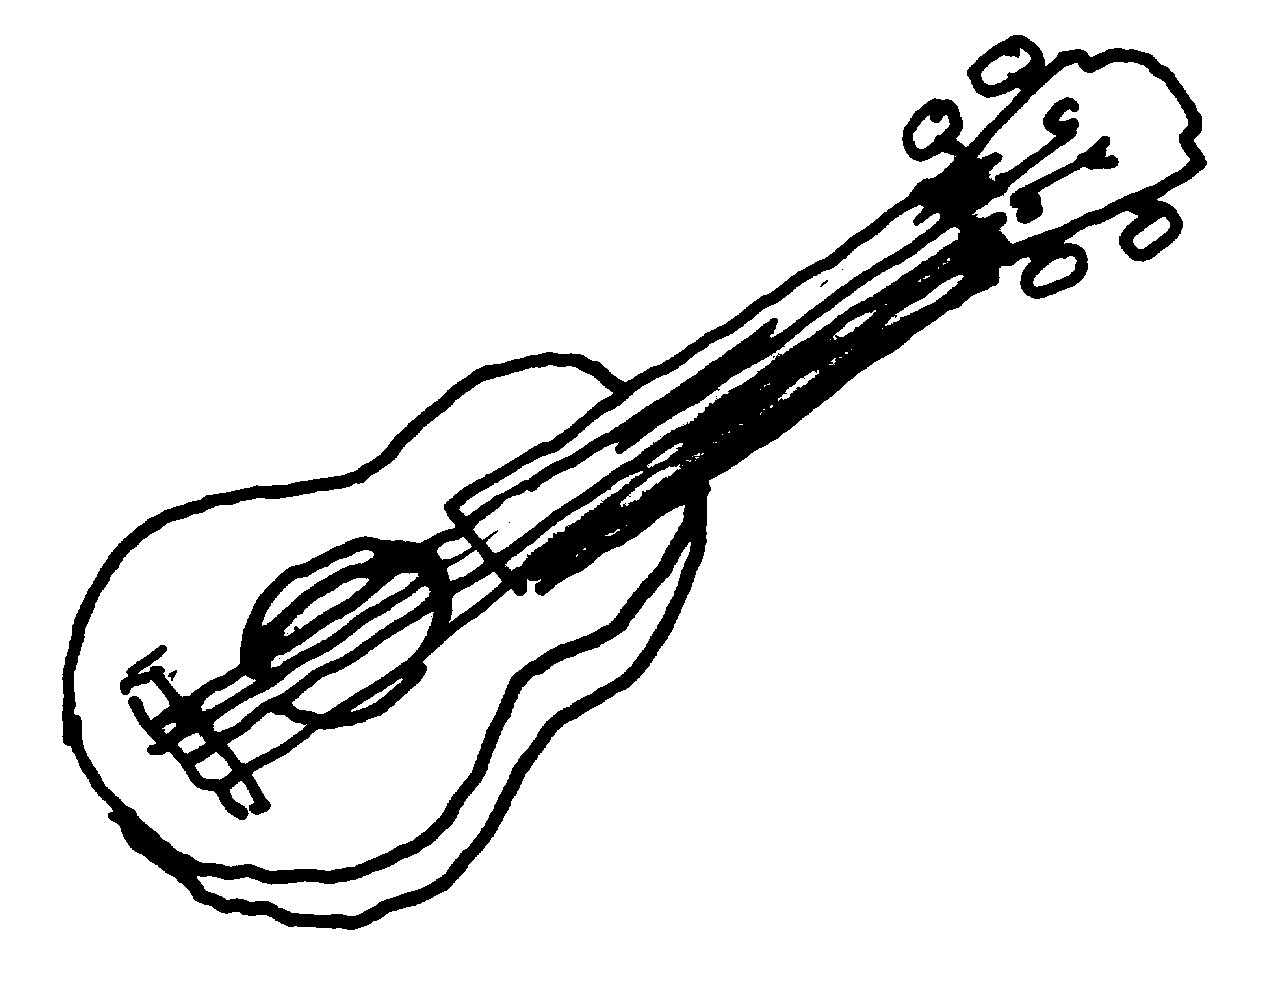 free online music clipart - photo #37